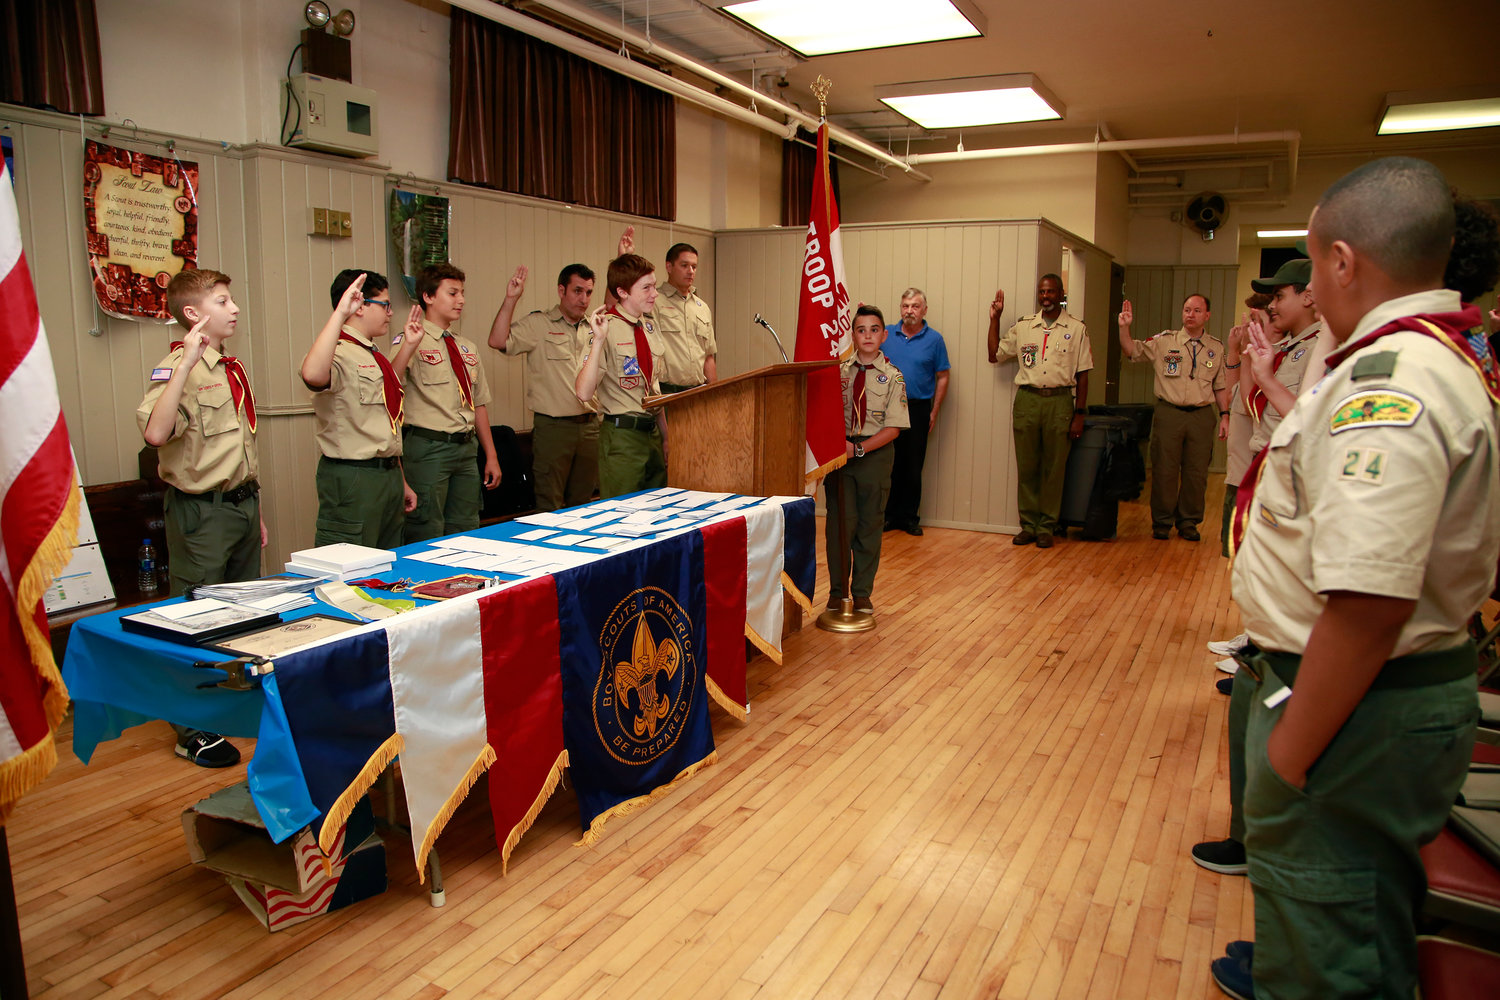 Boy Scout Troop 24 Patrol Leader A.J. Wladyka, at lectern, led the troop's Scout Oath during its Court of Honor ceremony at Our Lady of Lourdes Church on Oct. 2.